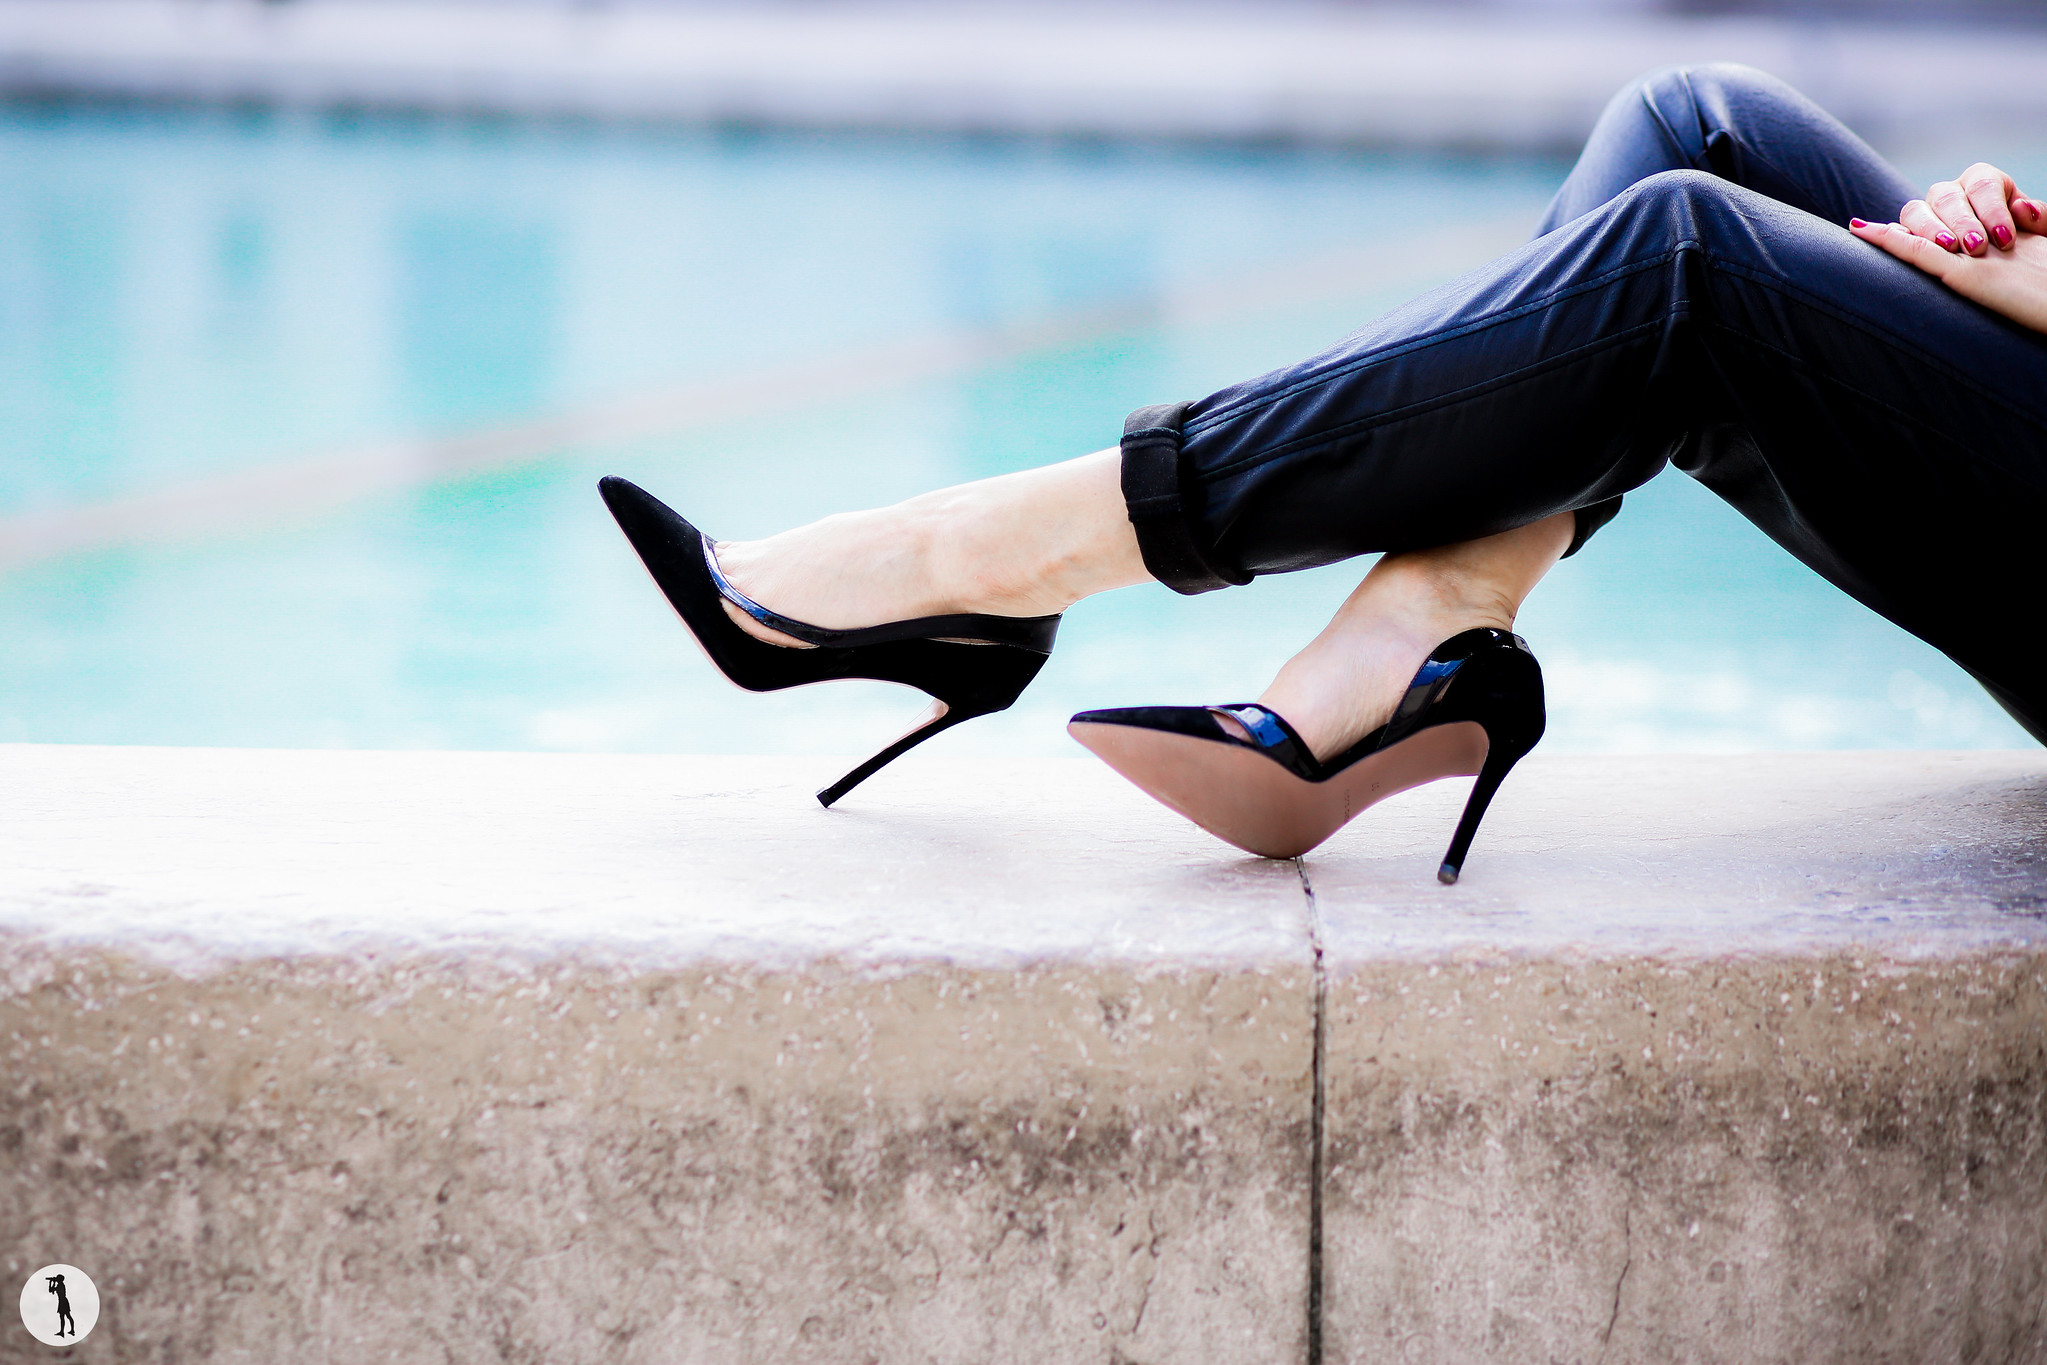 Photoshoot: Erin Adamson shoes, Paris.